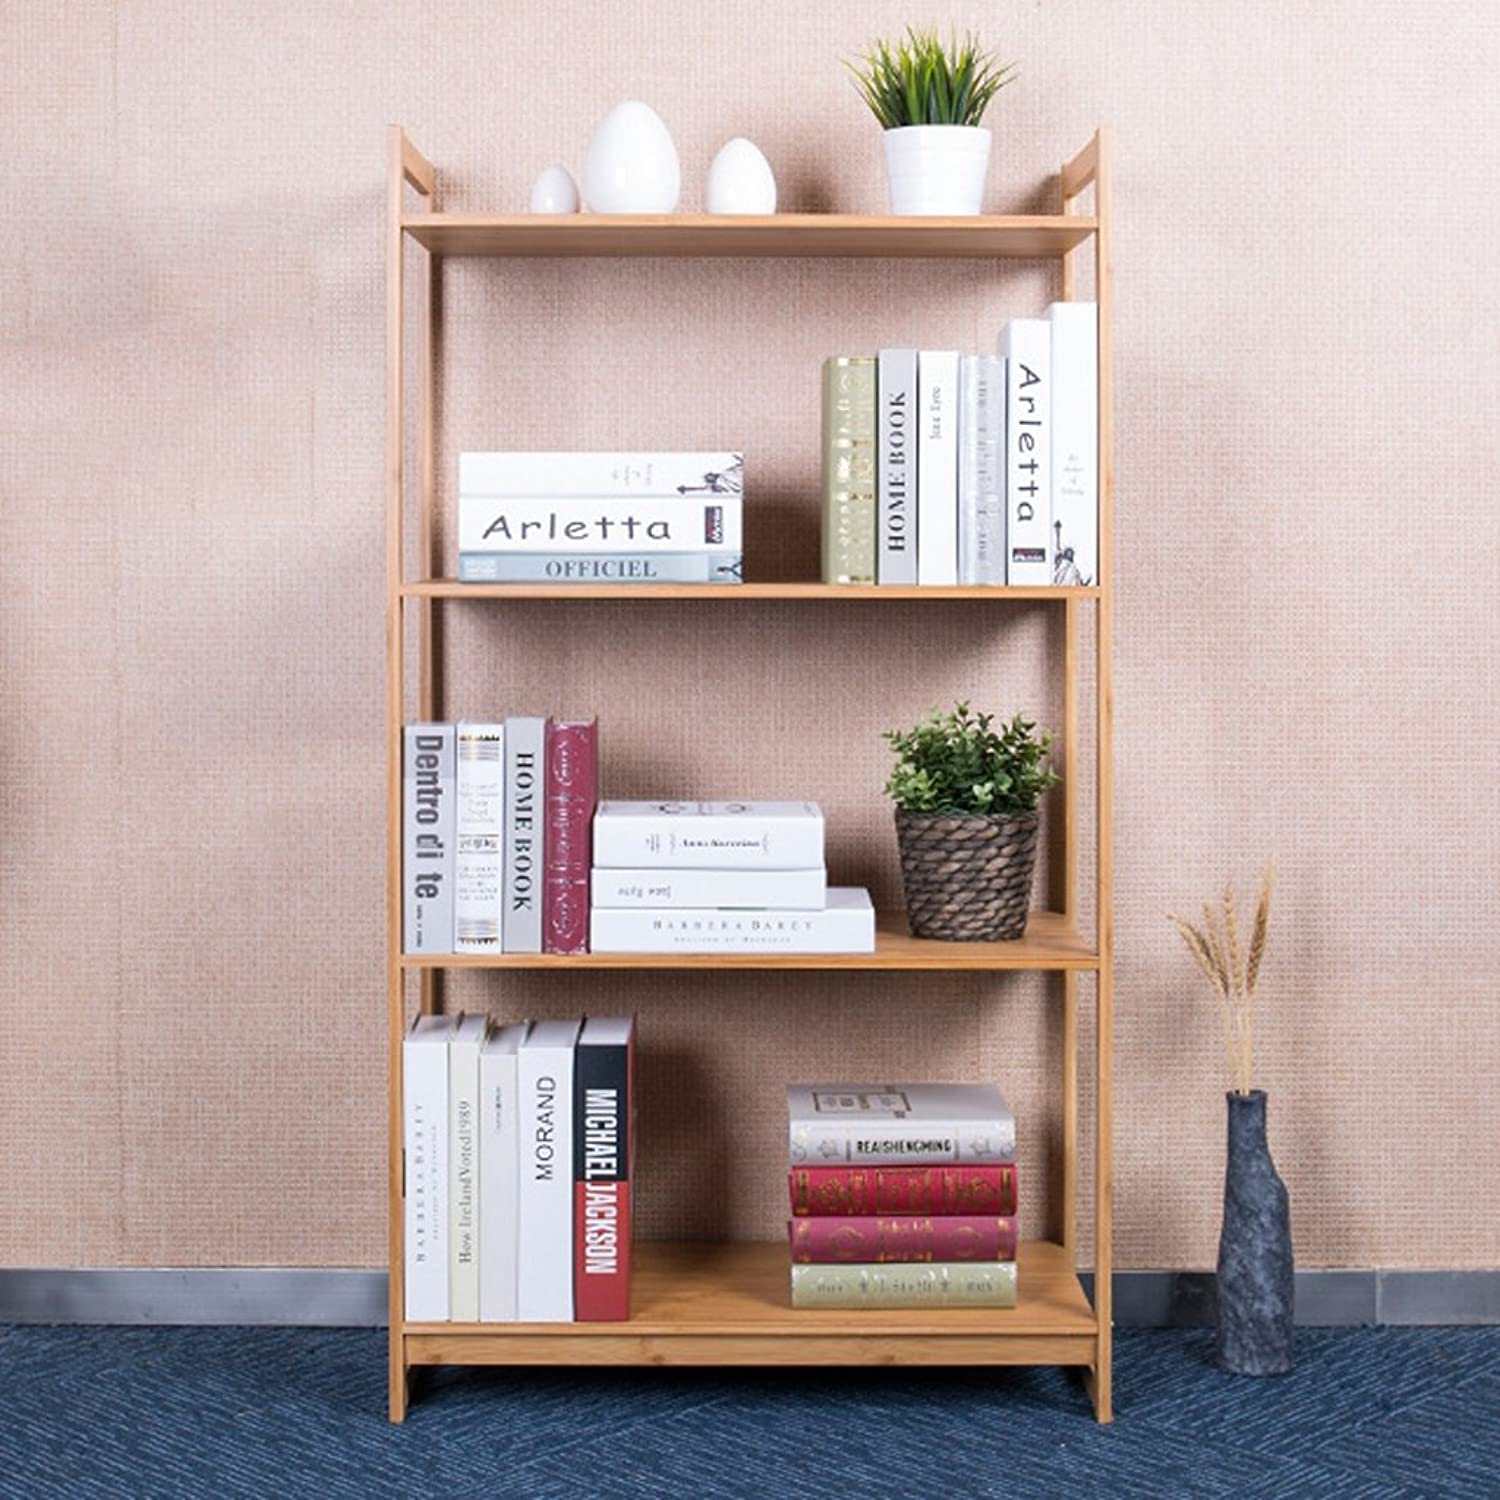 Living Room Bamboo Shelf Creative Kitchen Microwave Oven Frame Landing Bookshelf Storage Rack -by TIANTA (Size   40  30  123cm)